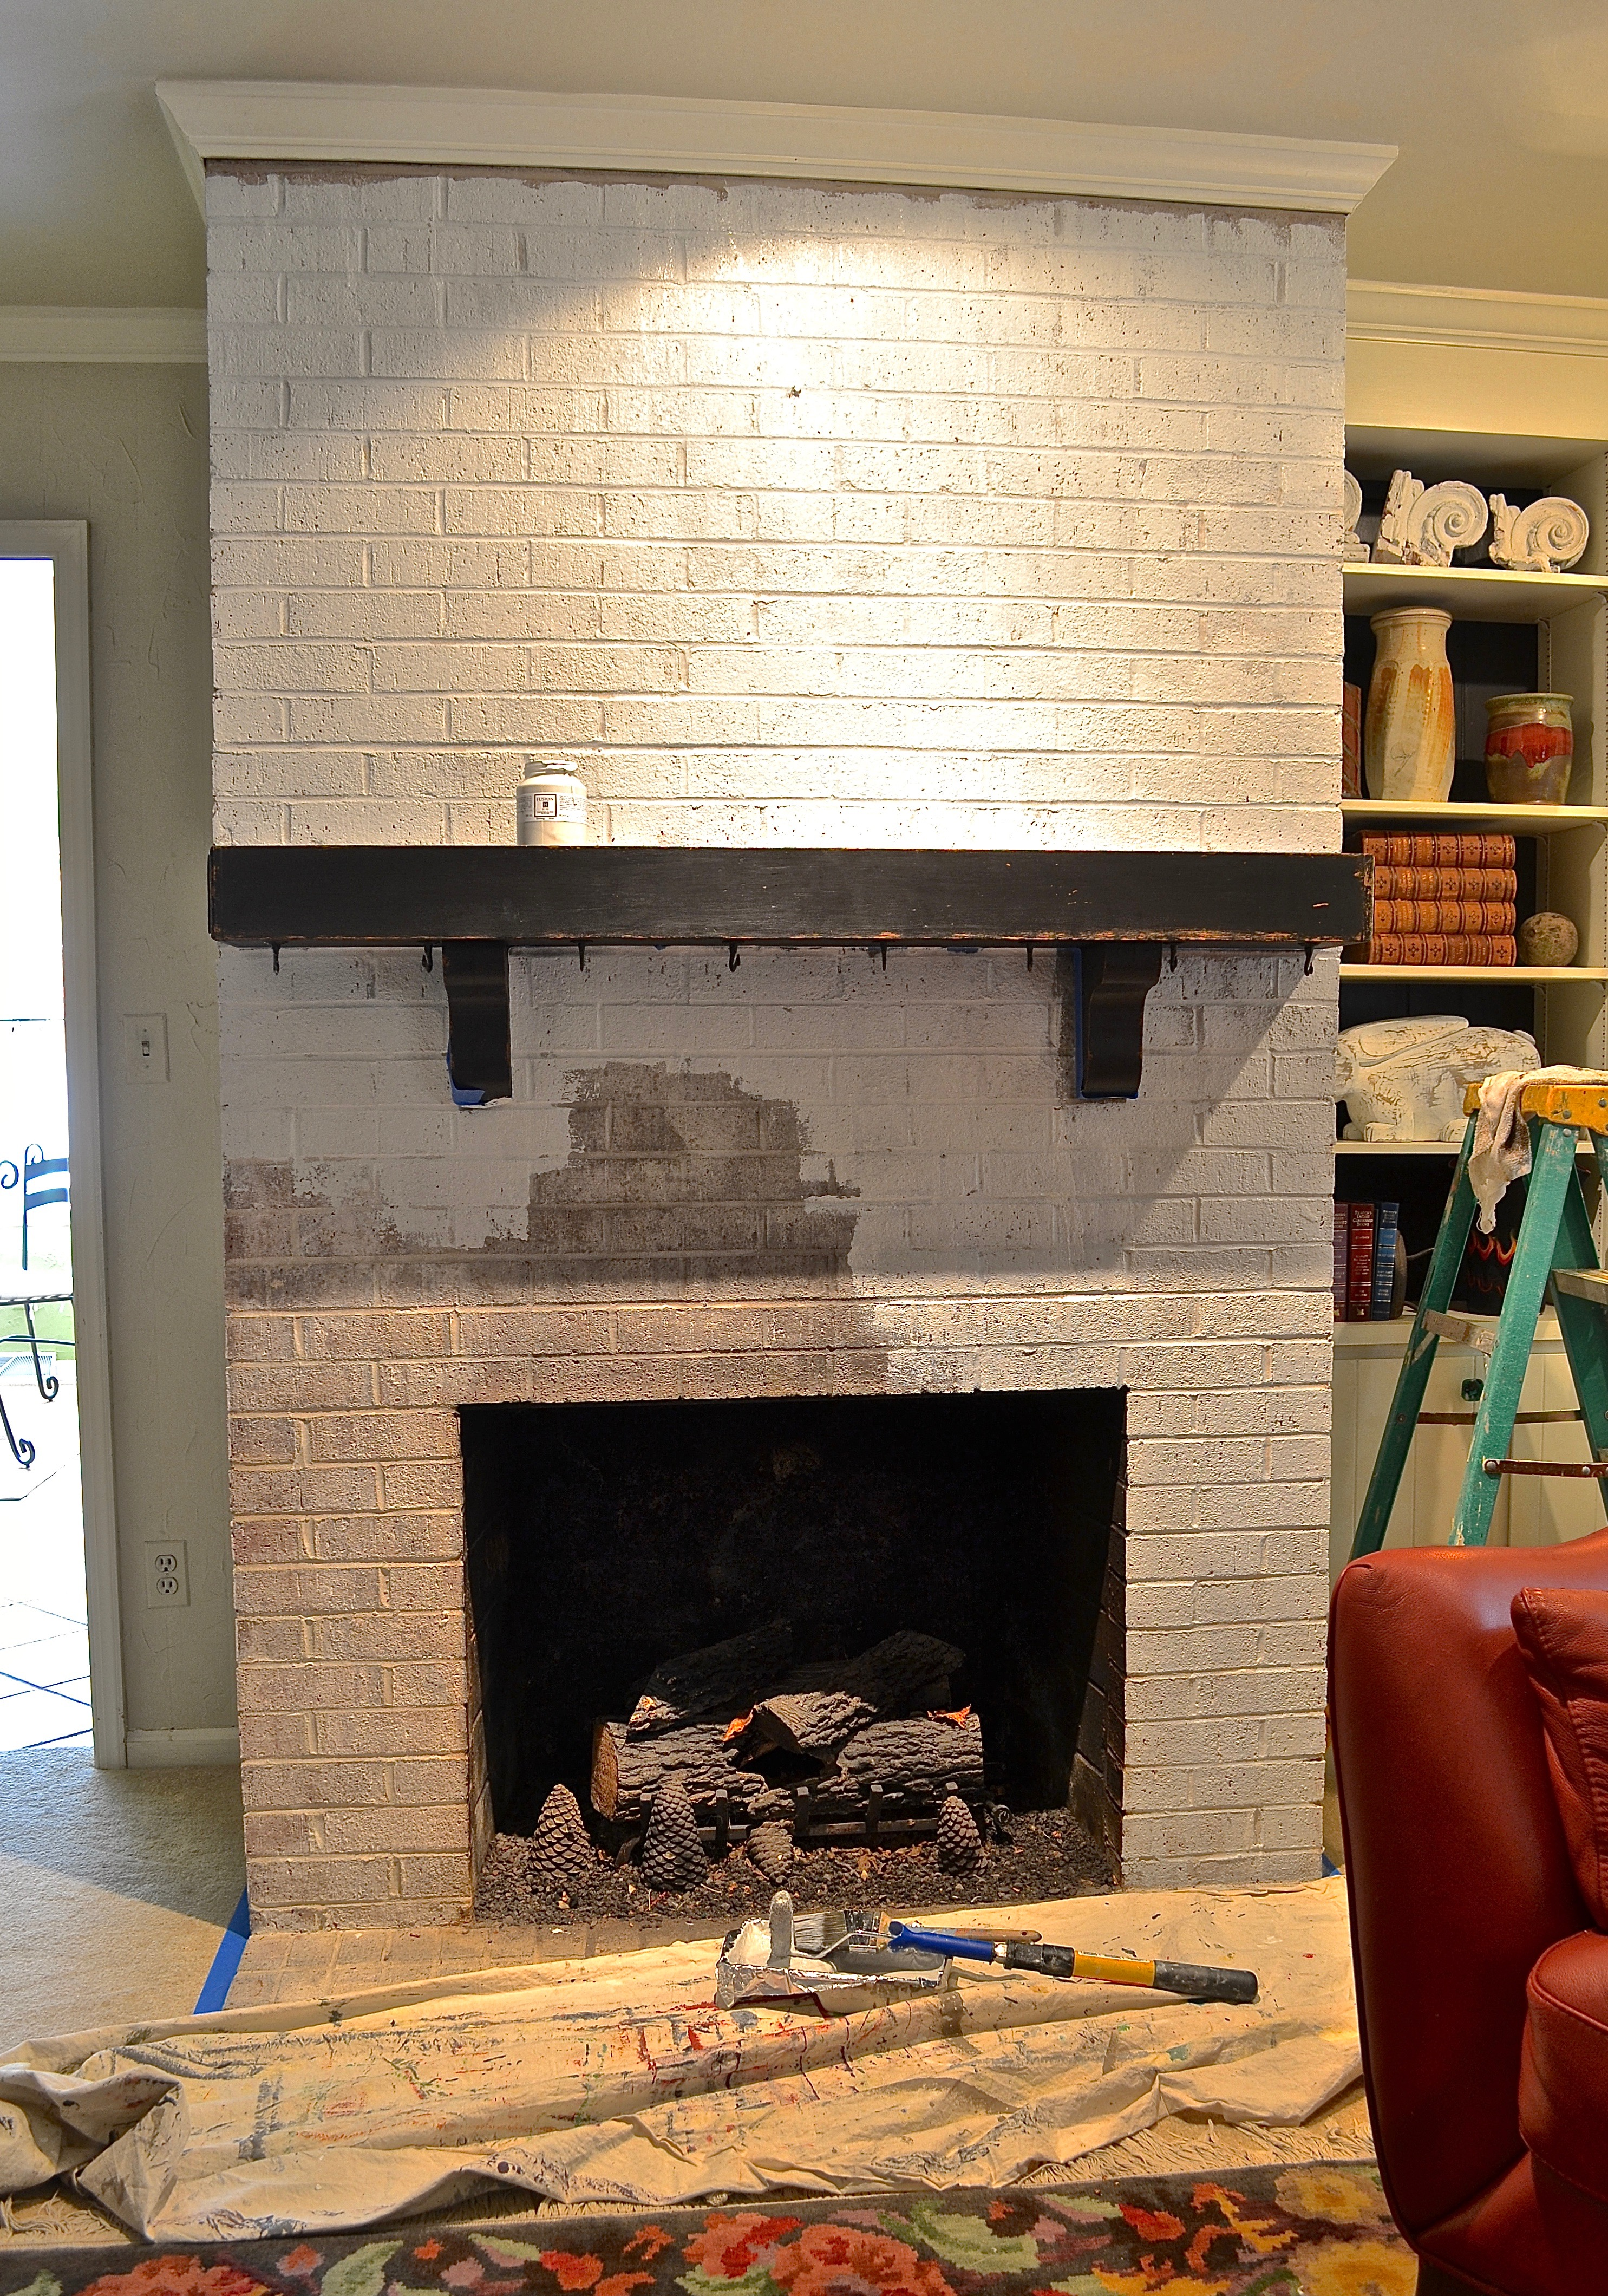 My Patch Of Blue Sky | How To Paint A Brick Fireplace And Mantel With Fusion Mineral Paint